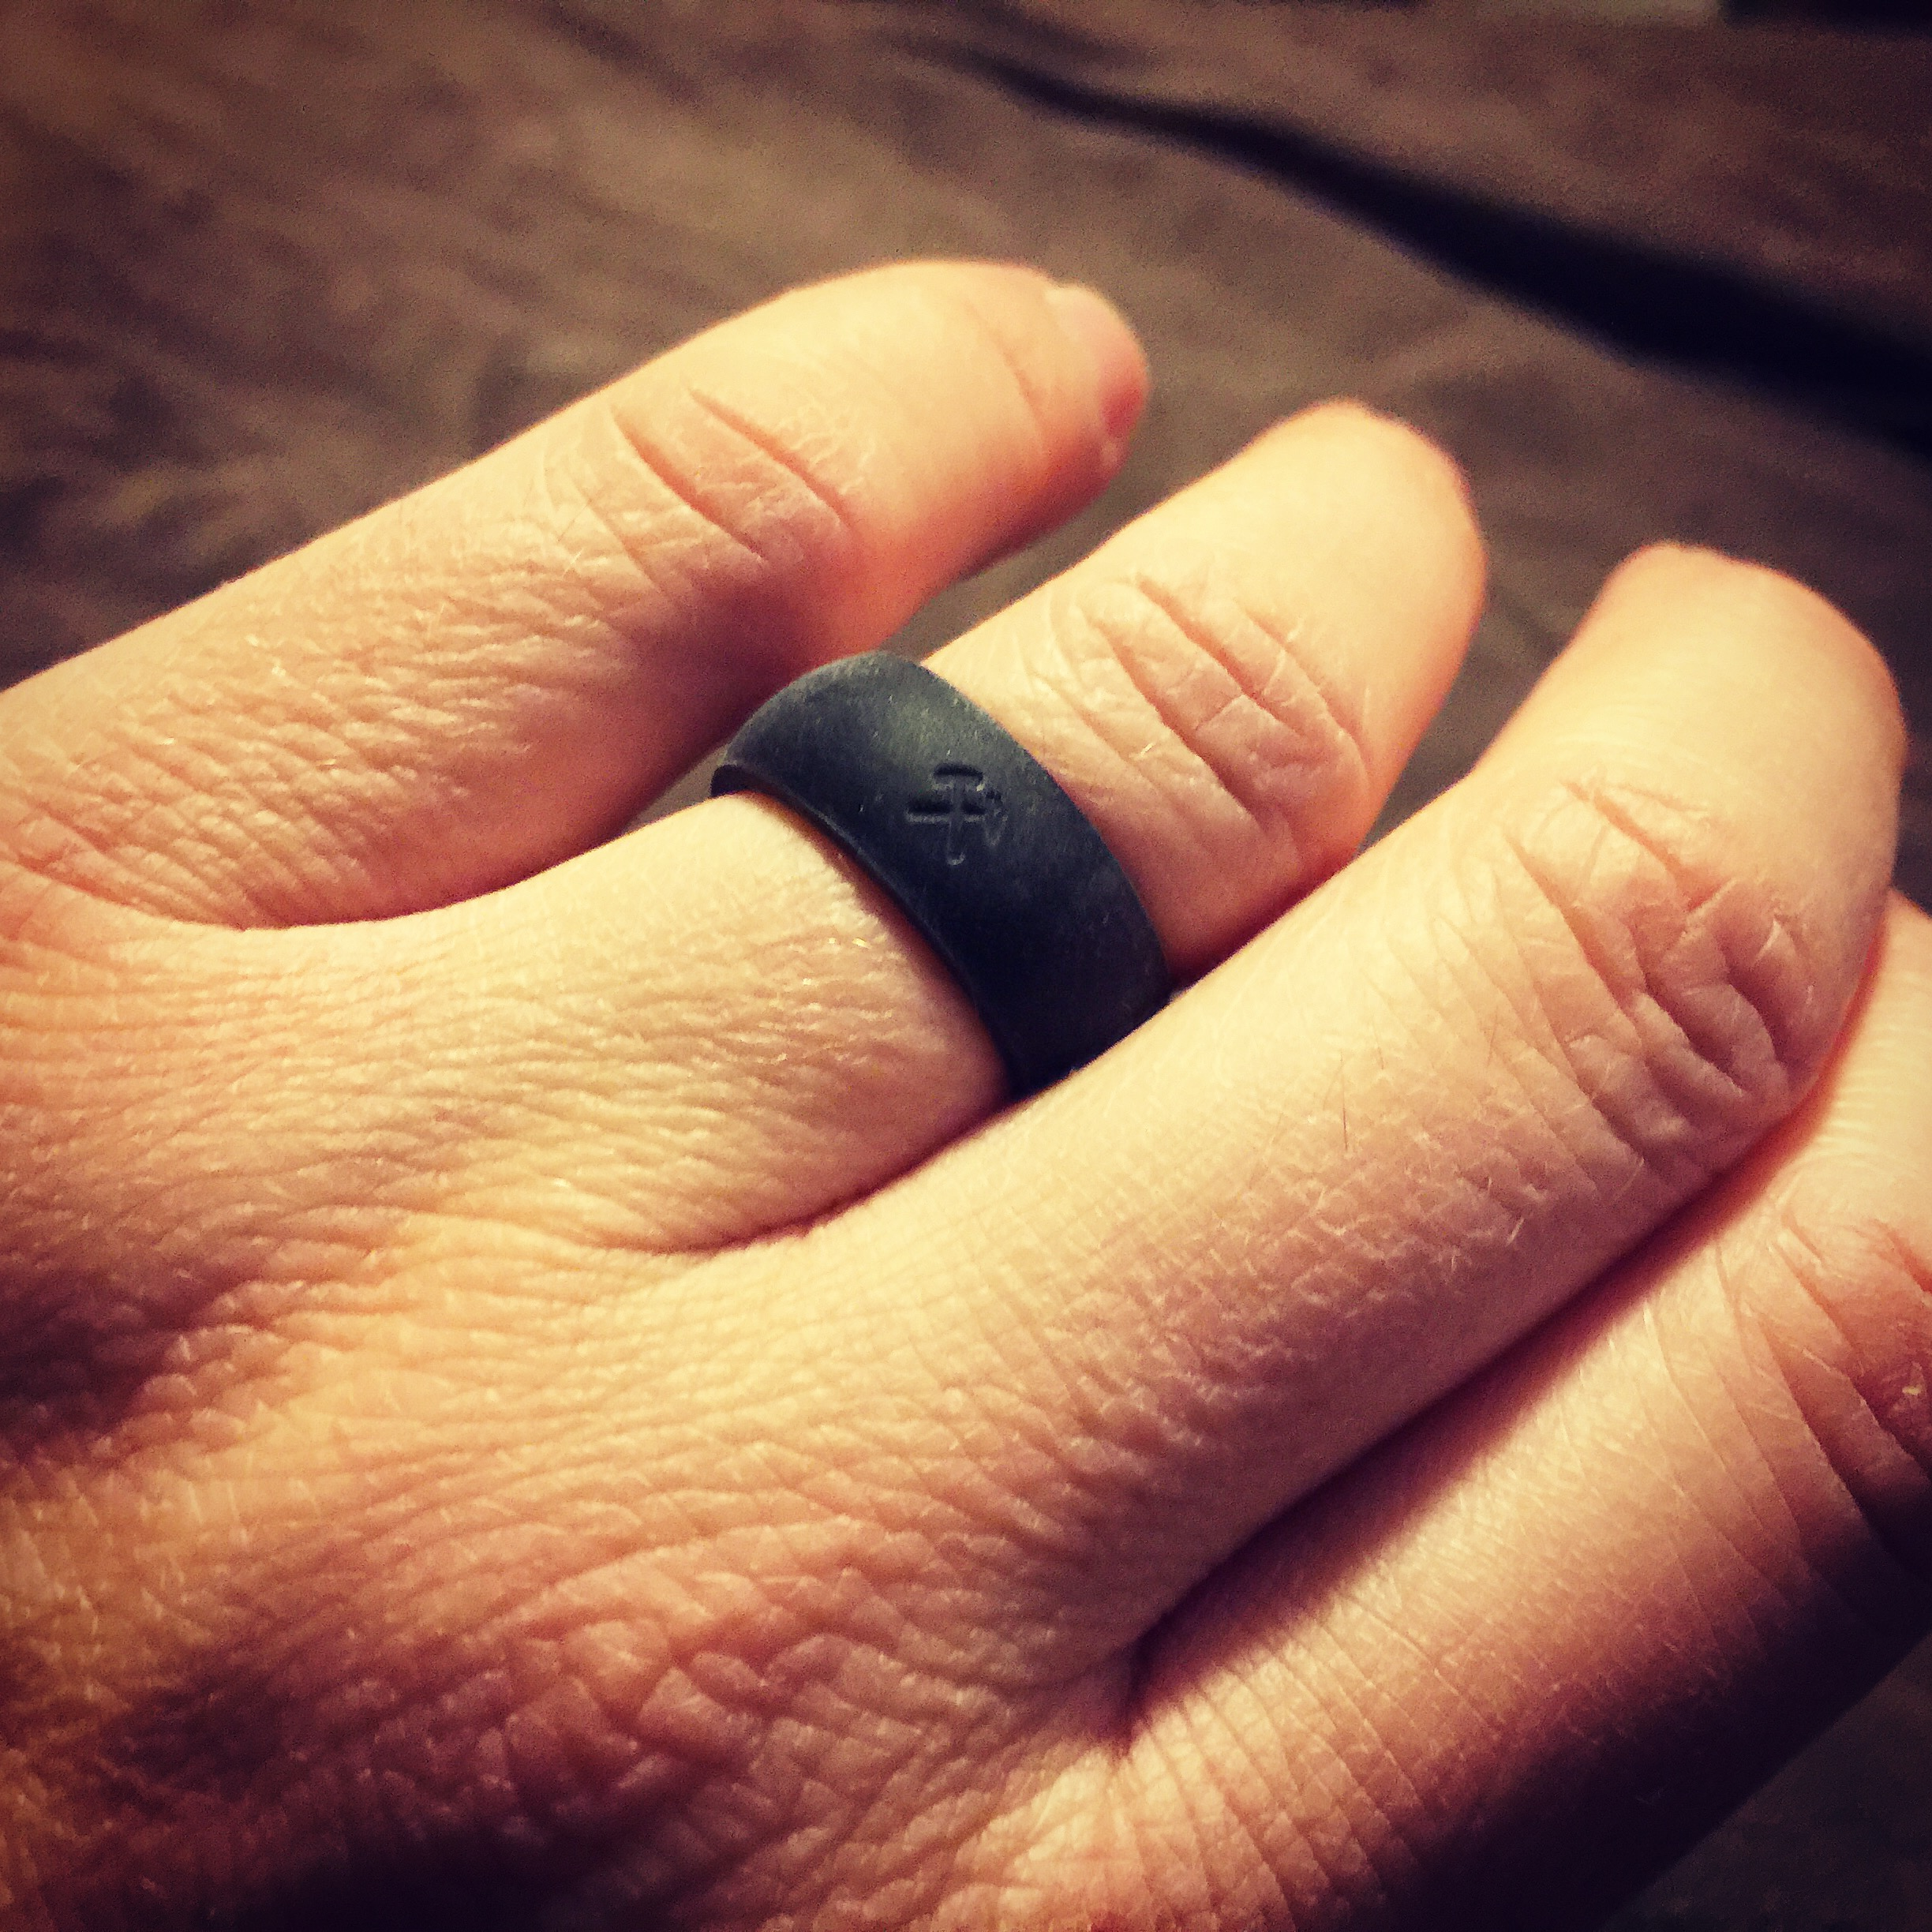 Qalo Silicone Ring Review 8541 Tactical